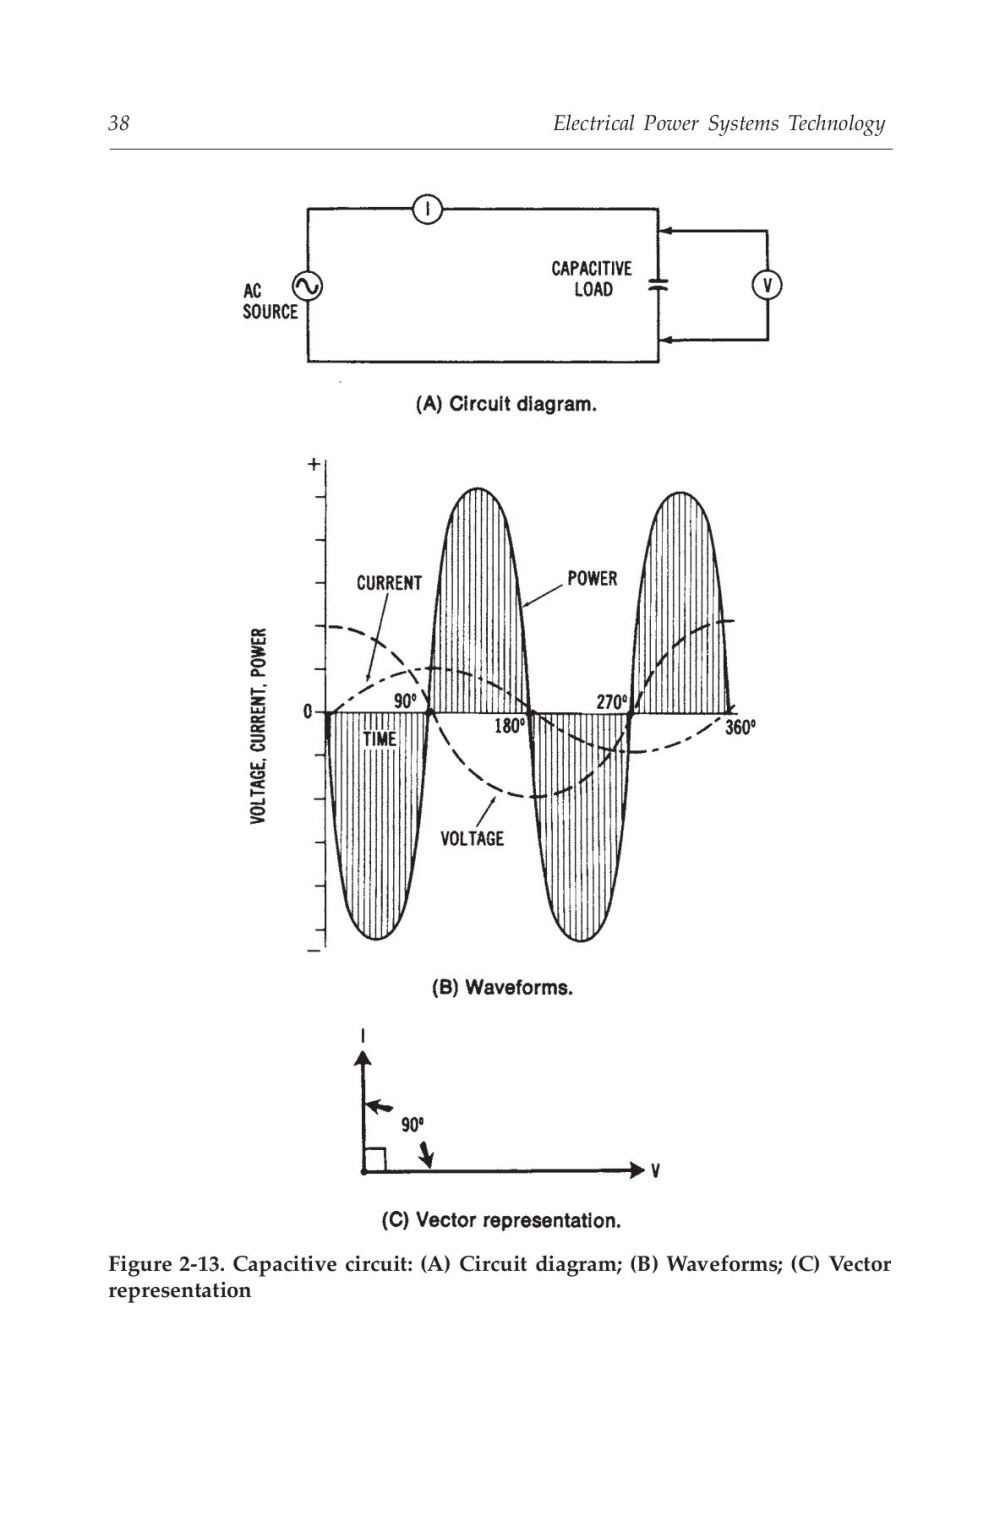 medium resolution of electrical power systems technology pages 51 100 text version fliphtml5